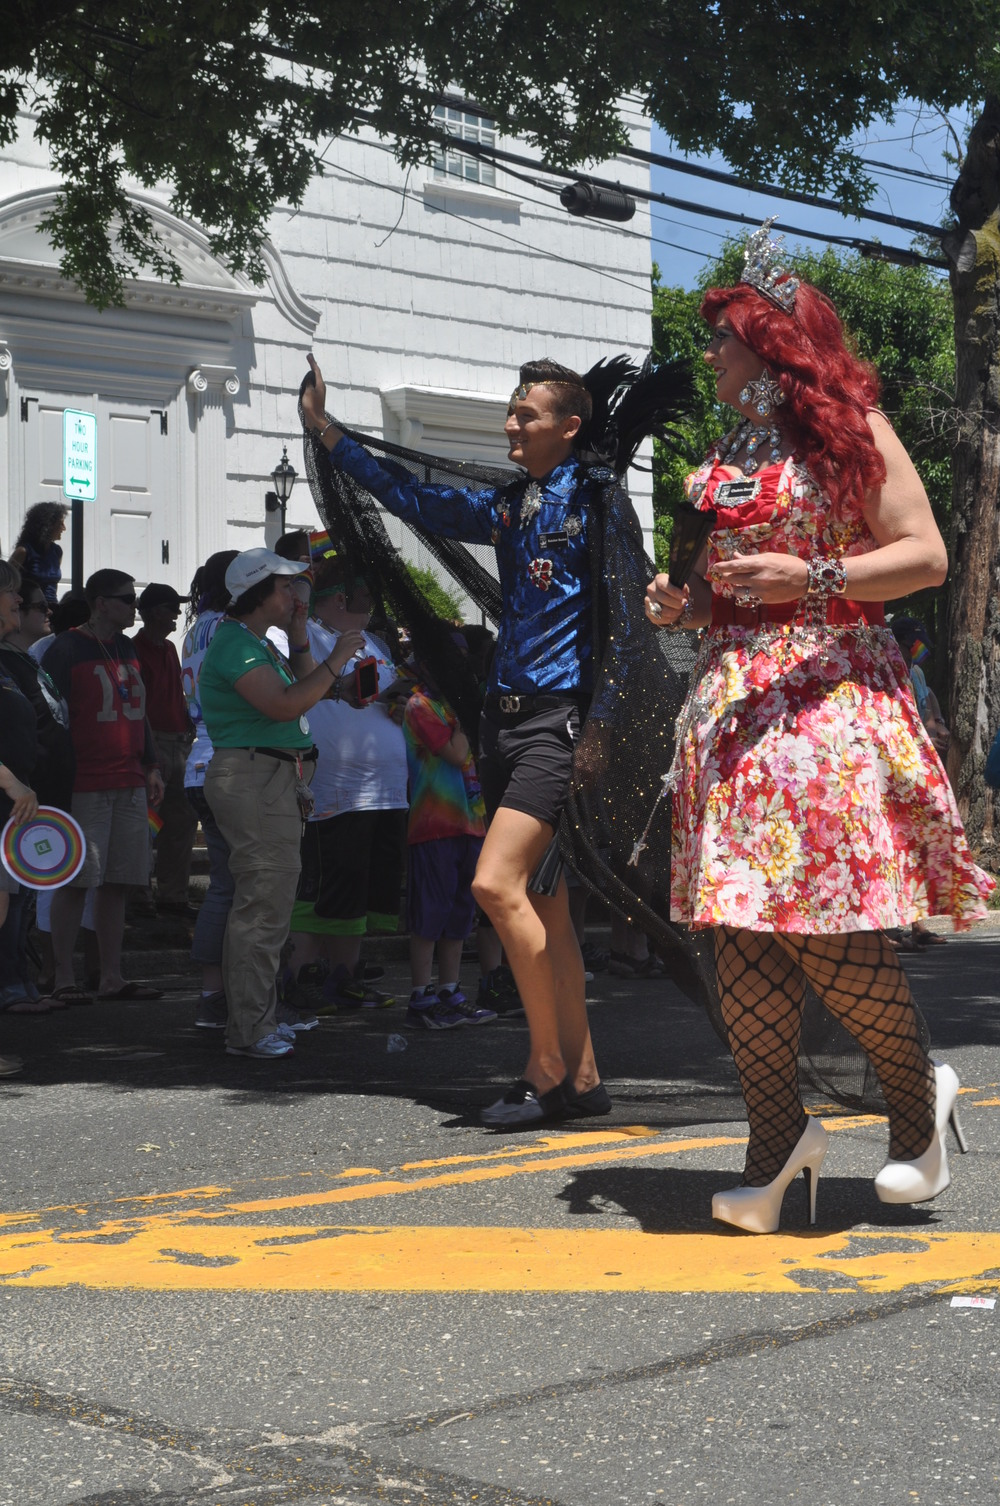 Daring fashions and eye-popping color filled the streets of Huntington village and later, Heckscher Park, on Saturday afternoon.